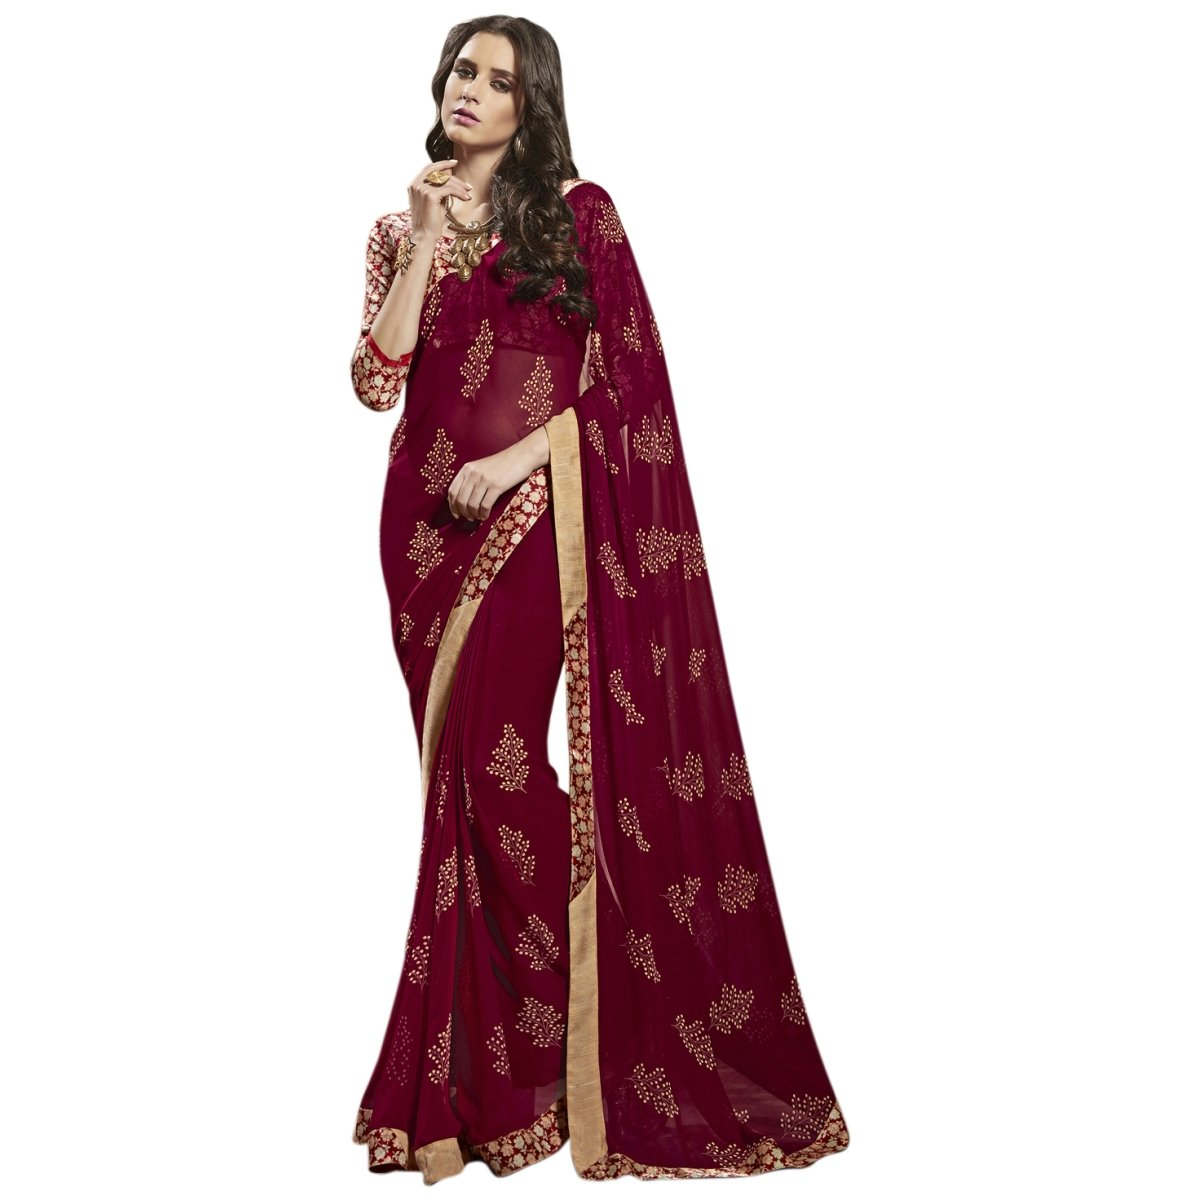 Aagaman Fashions Indian Women's Red Colored Printed Faux Georgette Casual Tragen Saree YTSNSY31025